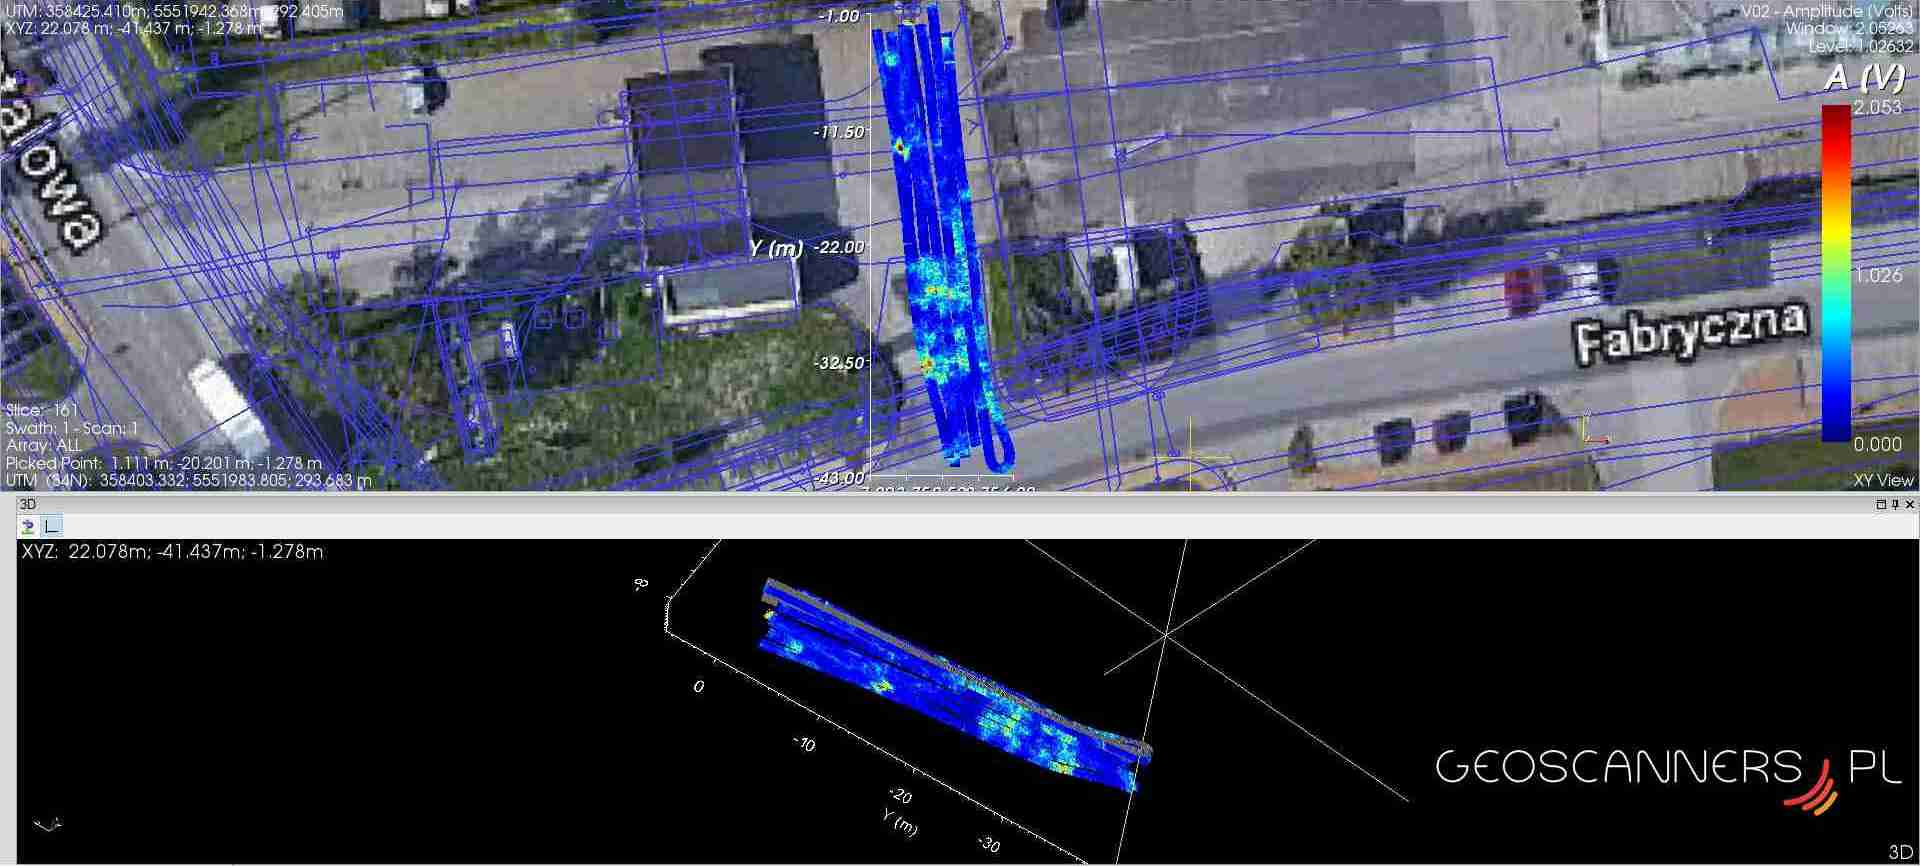 GPR 3D mapping